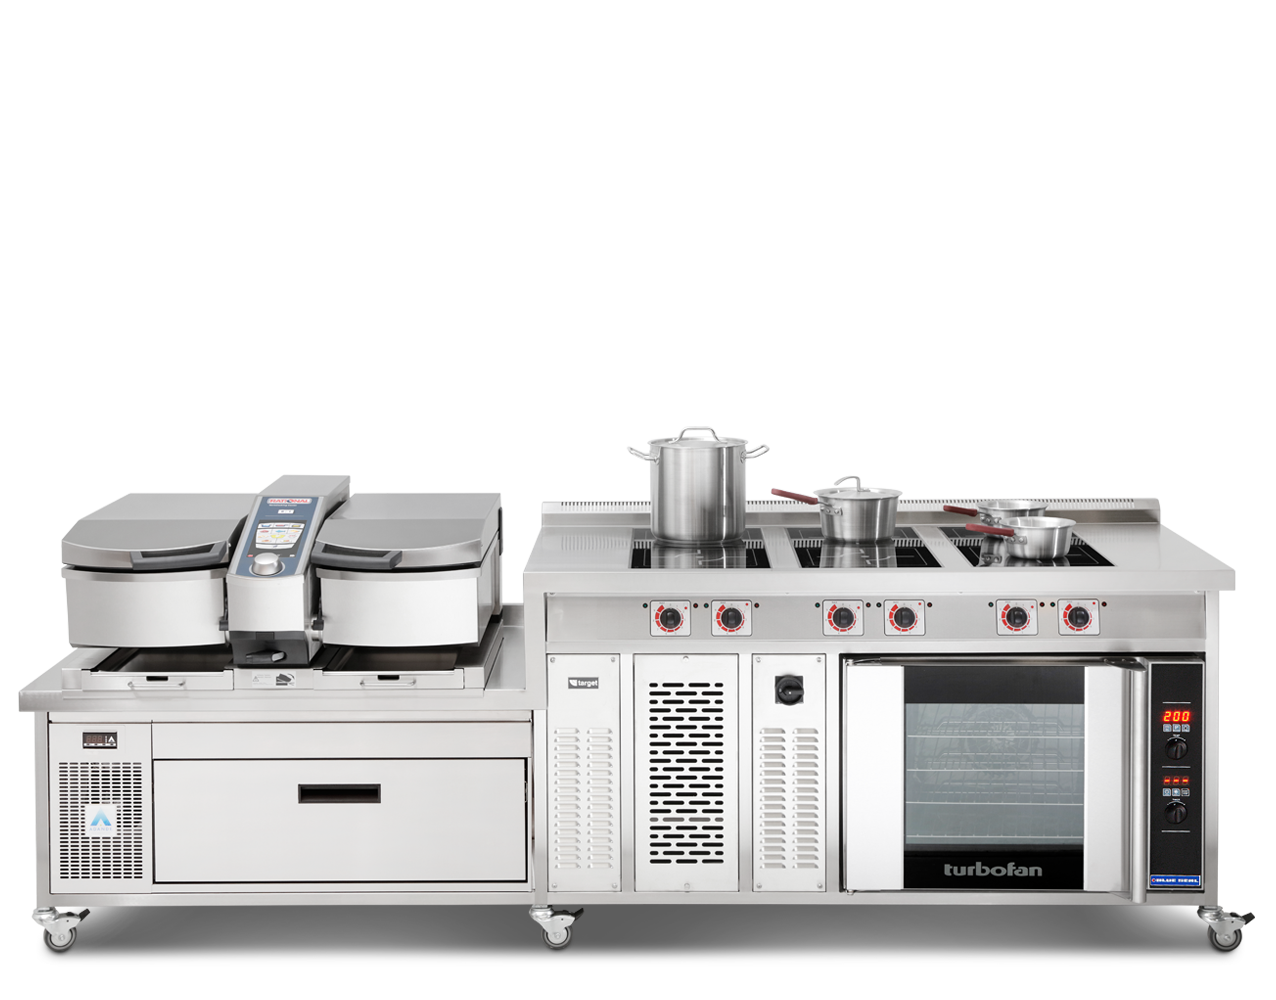 commercial-induction-stove-rational-variocookingcenter.png